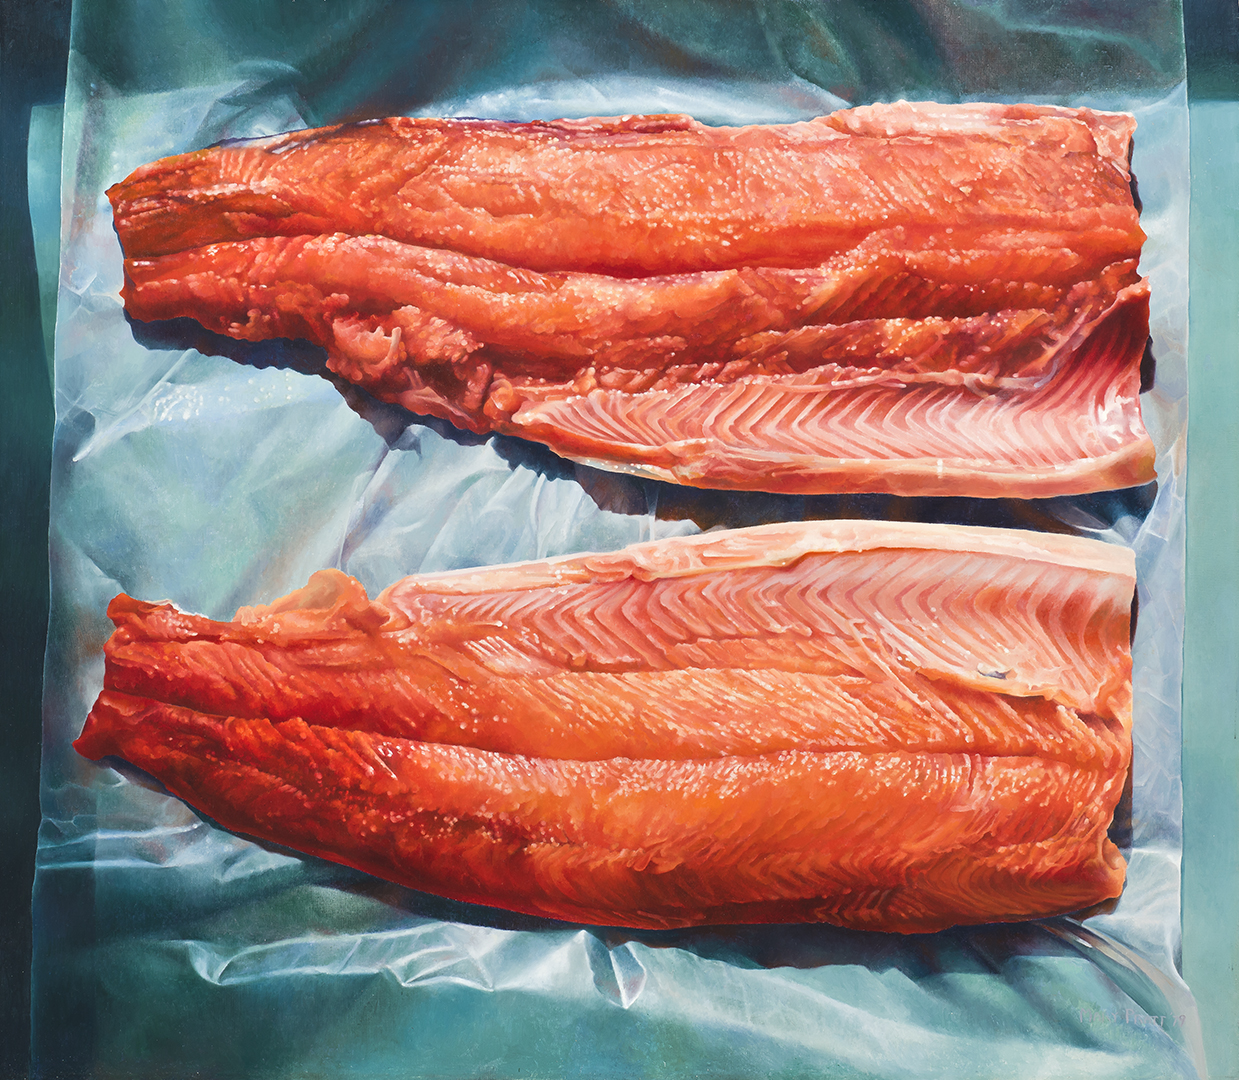 This painting shows two salmon fillets lying on sky-blue plastic wrap. The ribbed flesh of the fish is reproduced with an abundance of detail and gleams in vivid tones of red and orange.